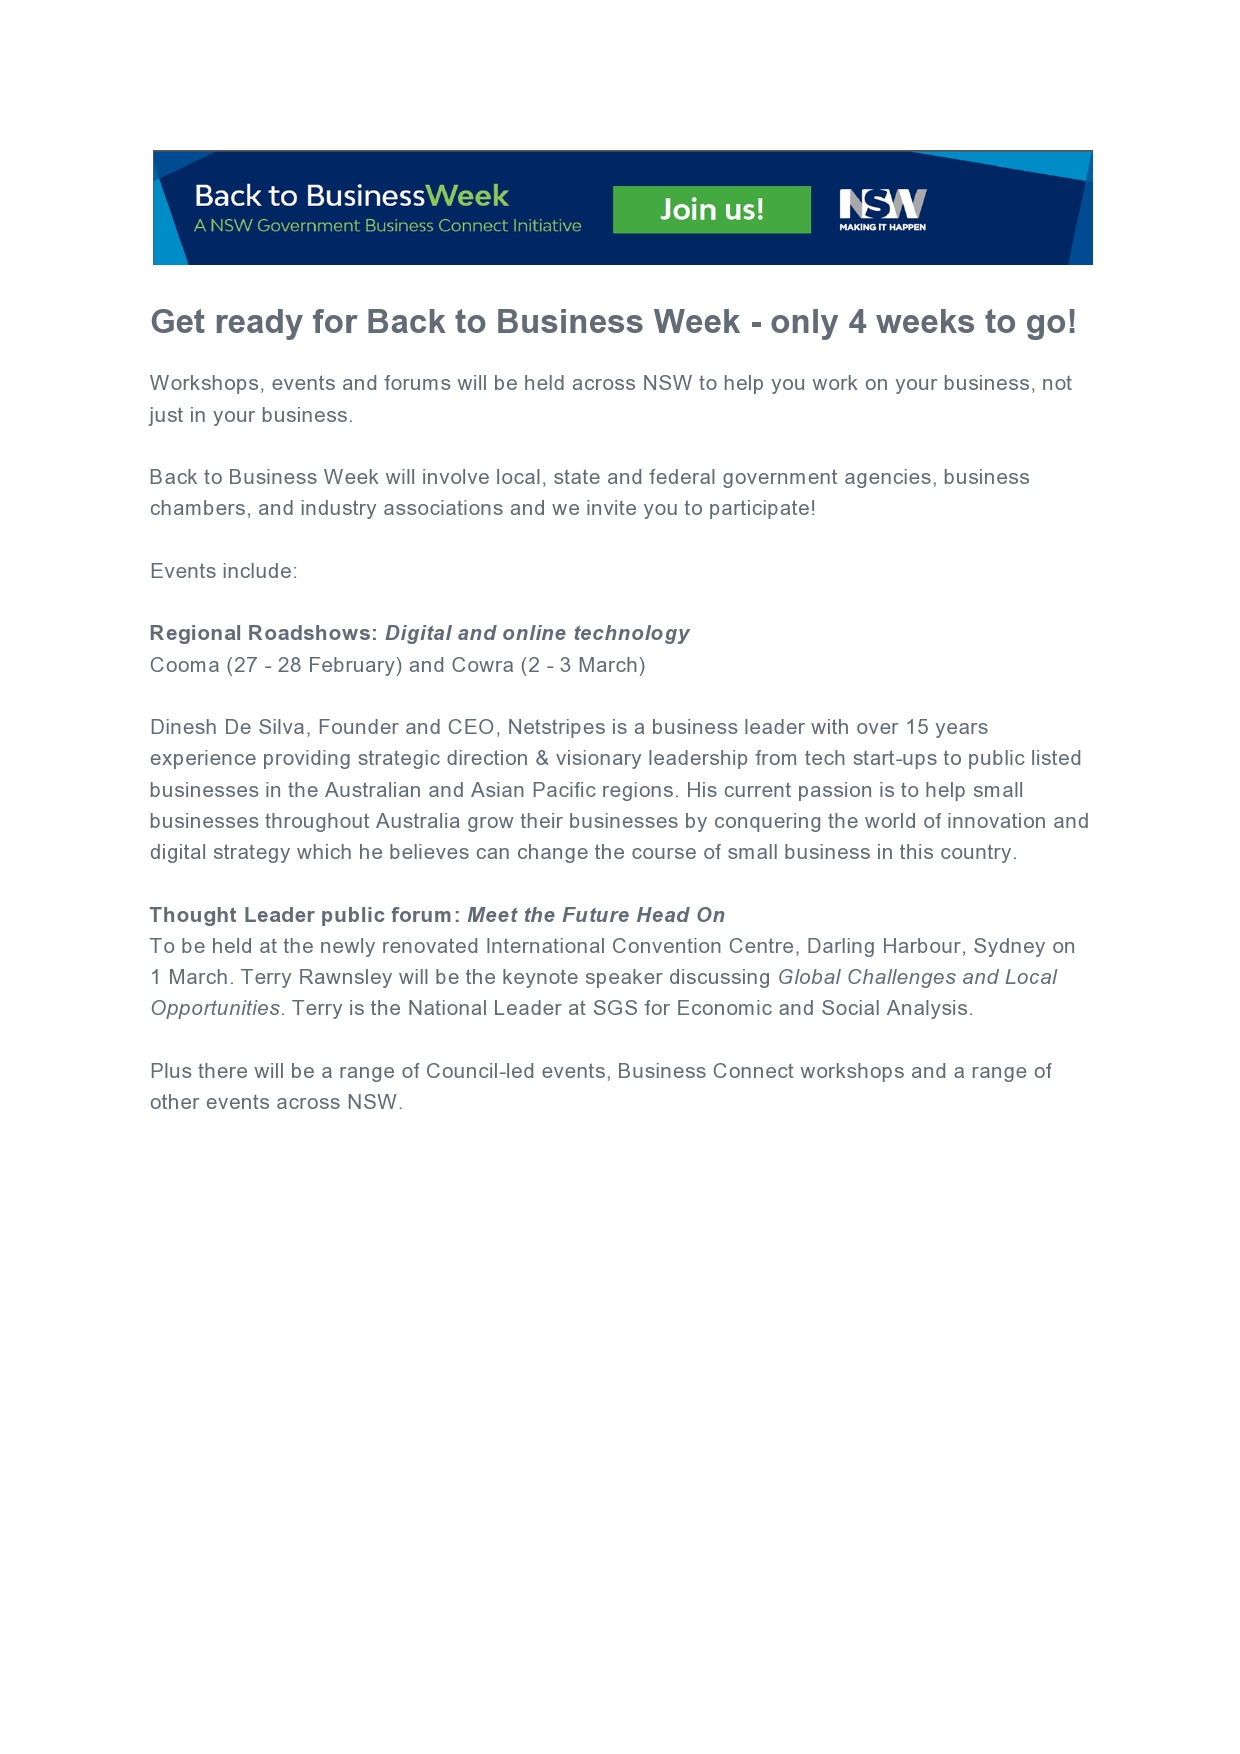 Get ready for Back to Business Week-page0001